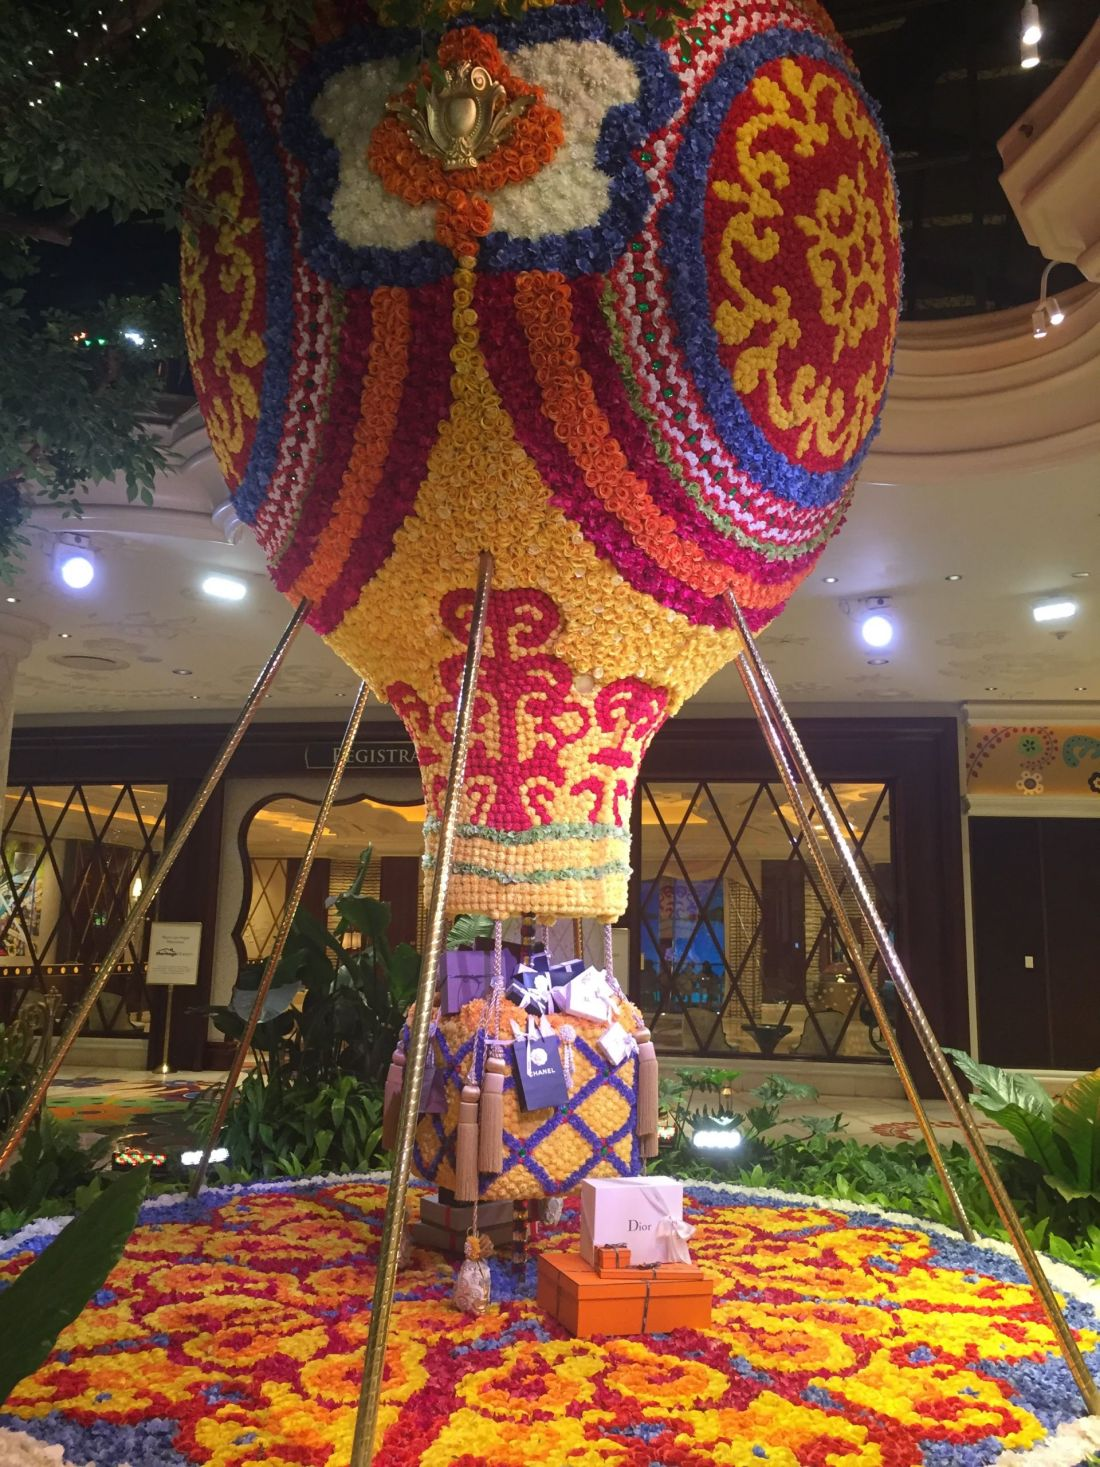 Floral hot air balloon at the Wynn, Las Vegas